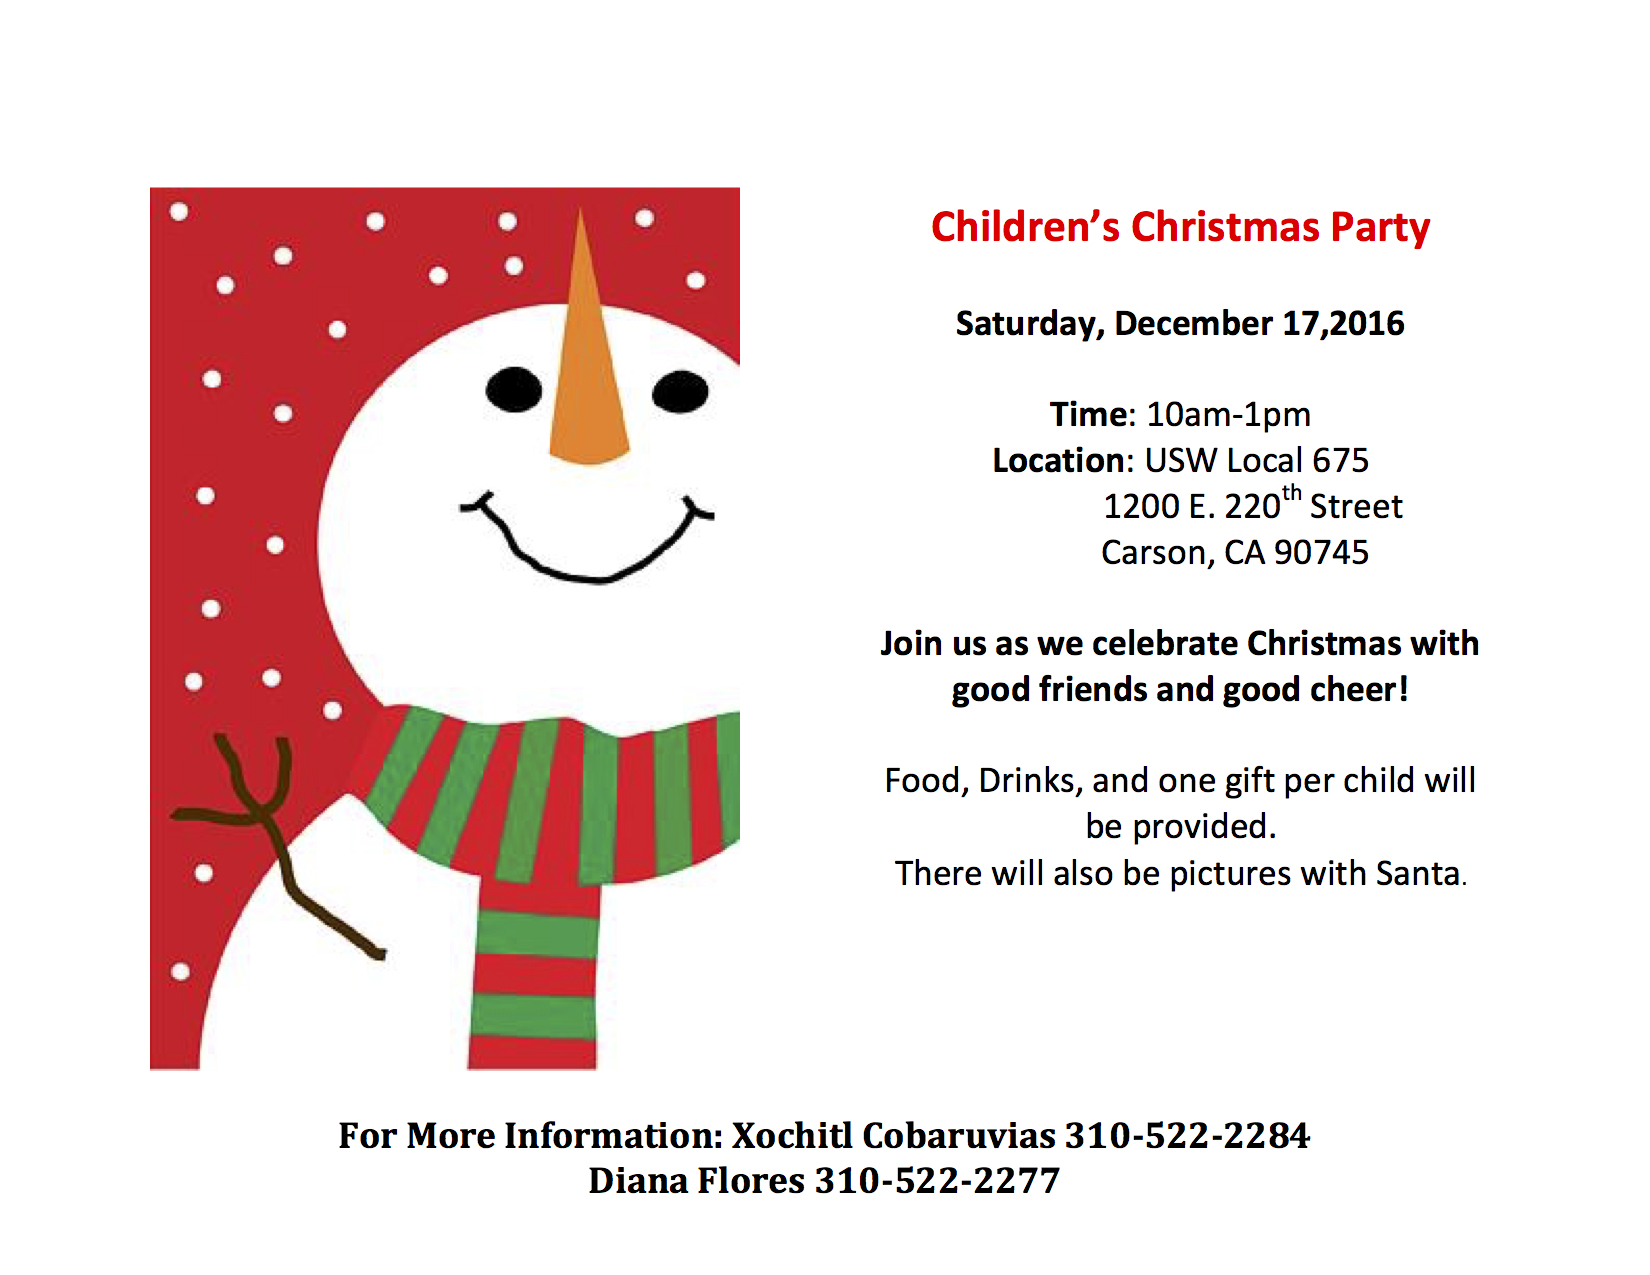 We will be having our annual Children's Christmas Party on Saturday, December 17th at our Carson Hall. It will be from 10:00AM - 1:00PM.  Bring your family and friends, we will be providing one gift per child and pictures with Santa!  Food and drink will be provided.  For more info call Xochitl or Diana: 310-522-2277 (X) / 310-522-2277 (D)